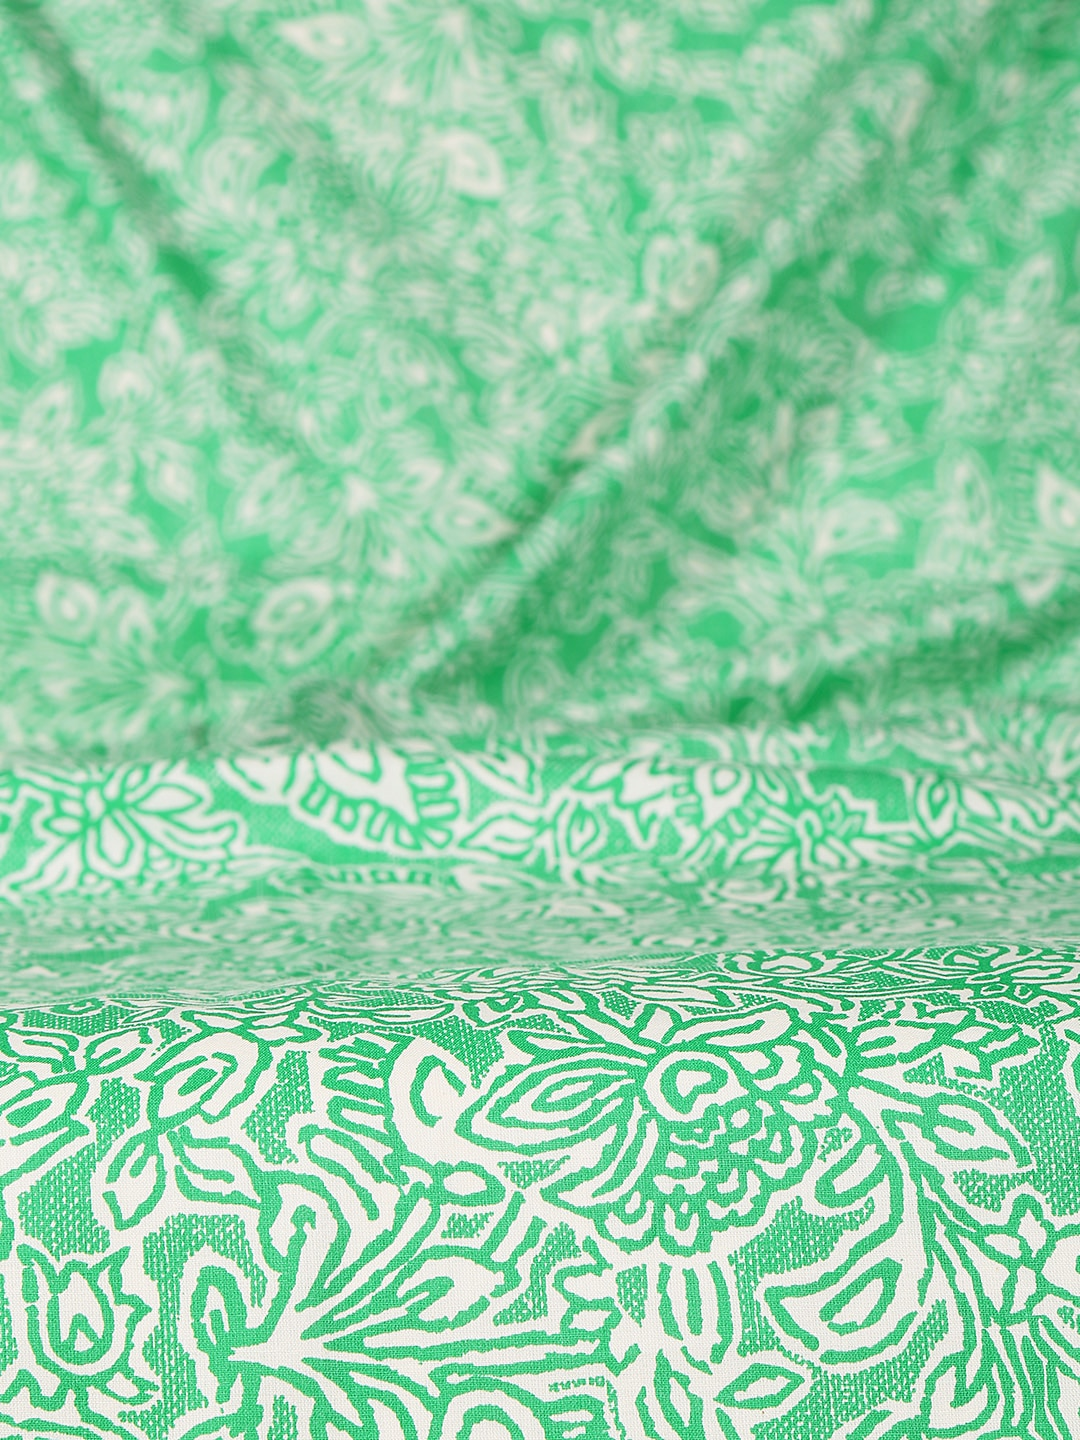 Green bed sheets texture - Green Bed Sheets Texture 45